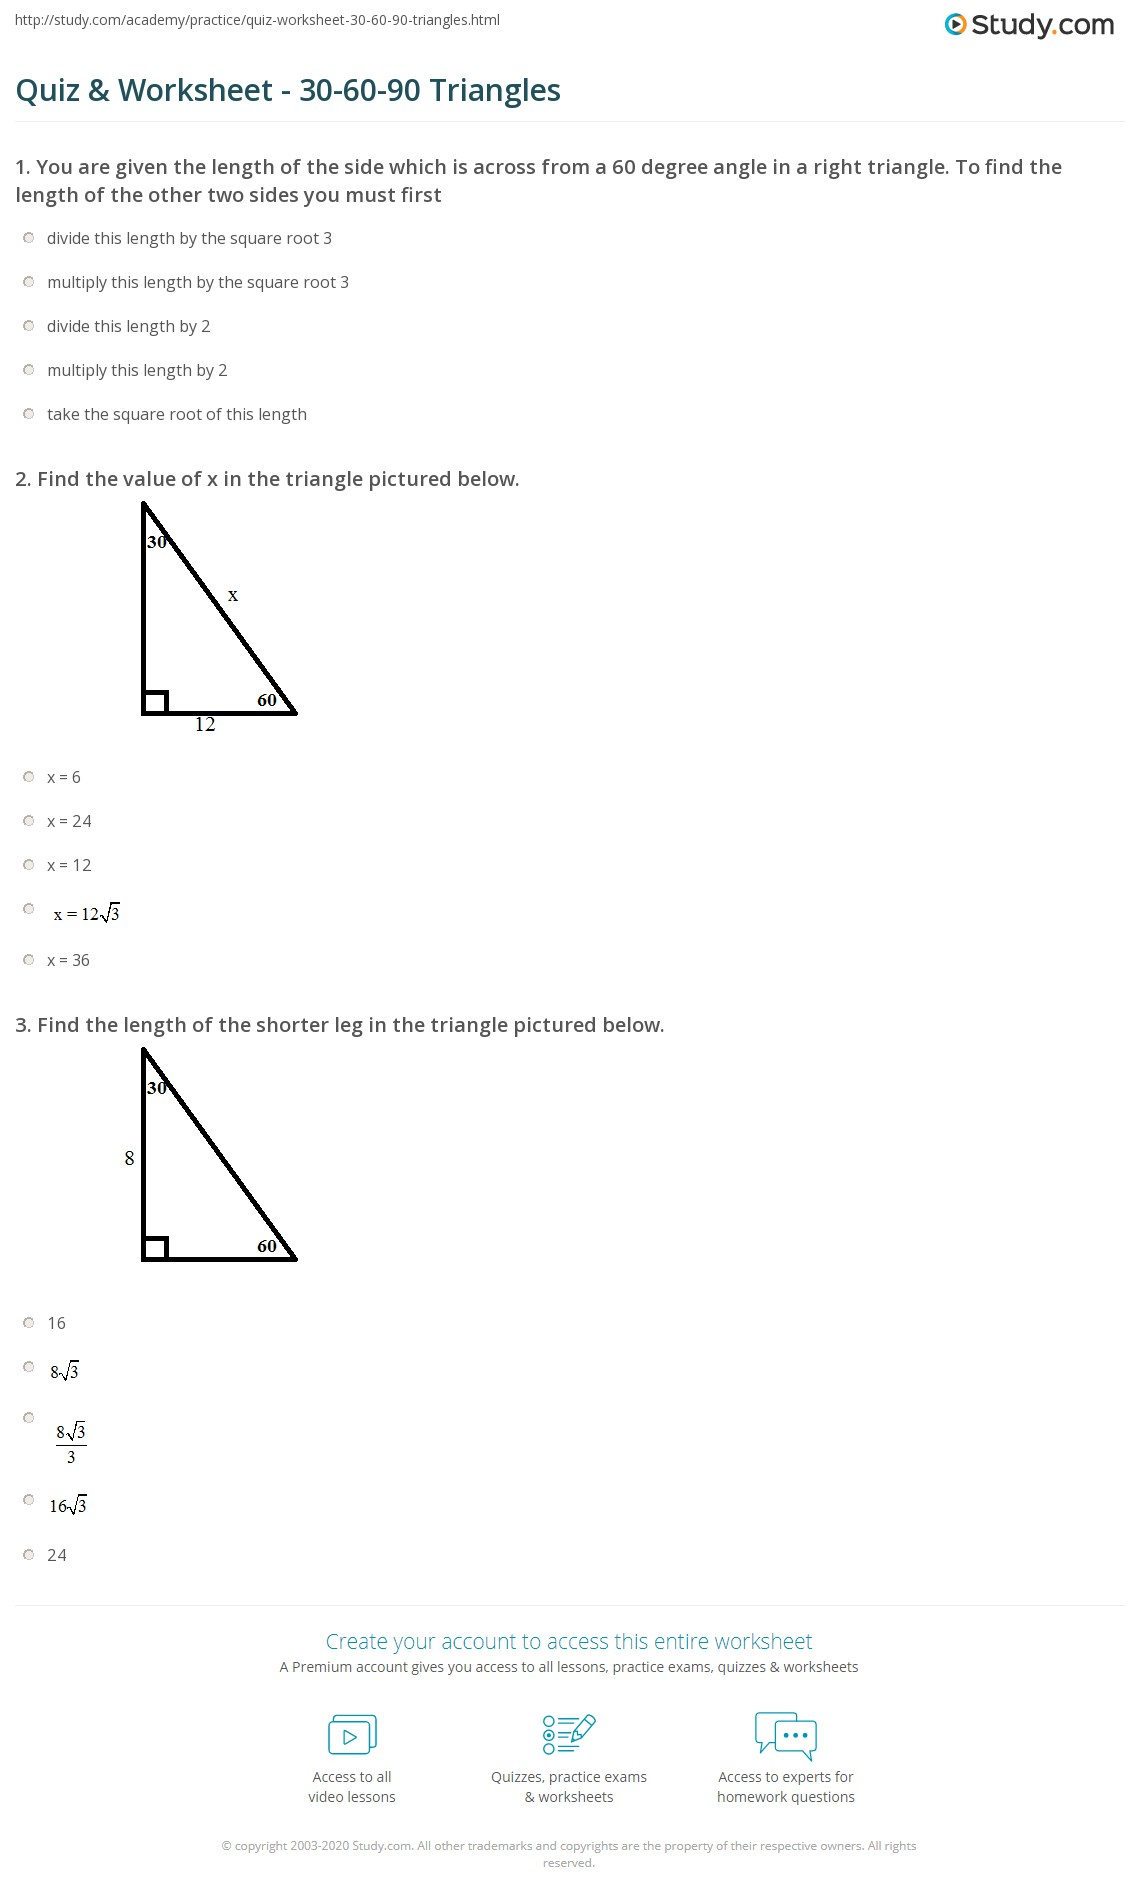 Worksheets 30-60-90 Triangle Worksheet quiz worksheet 30 60 90 triangles study com print triangle theorem properties formula worksheet